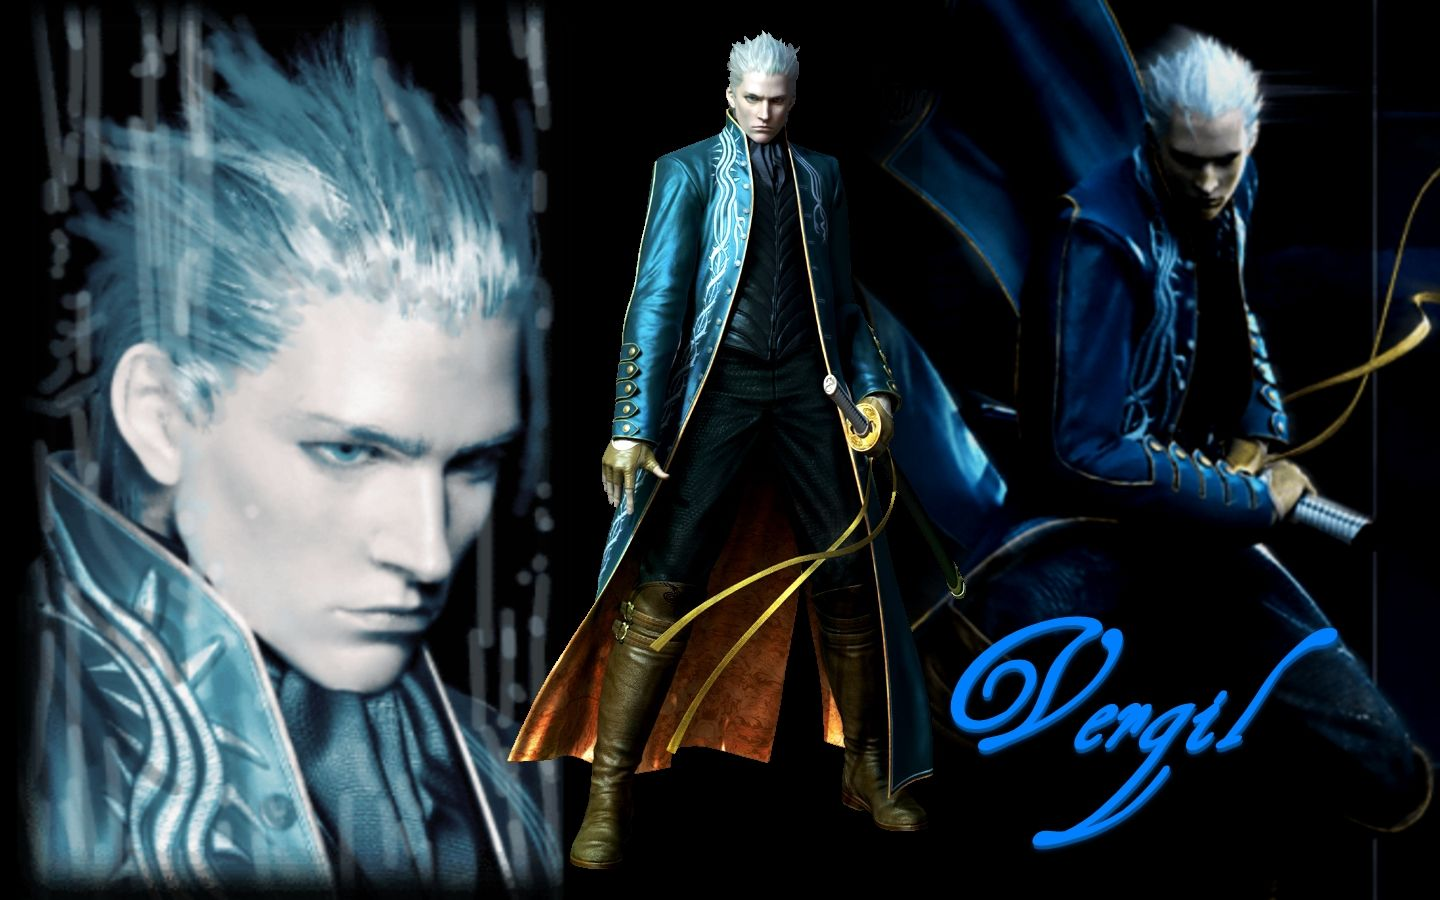 Download 3840x2400 Wallpaper Vergil Devil May Cry 5 Video Game